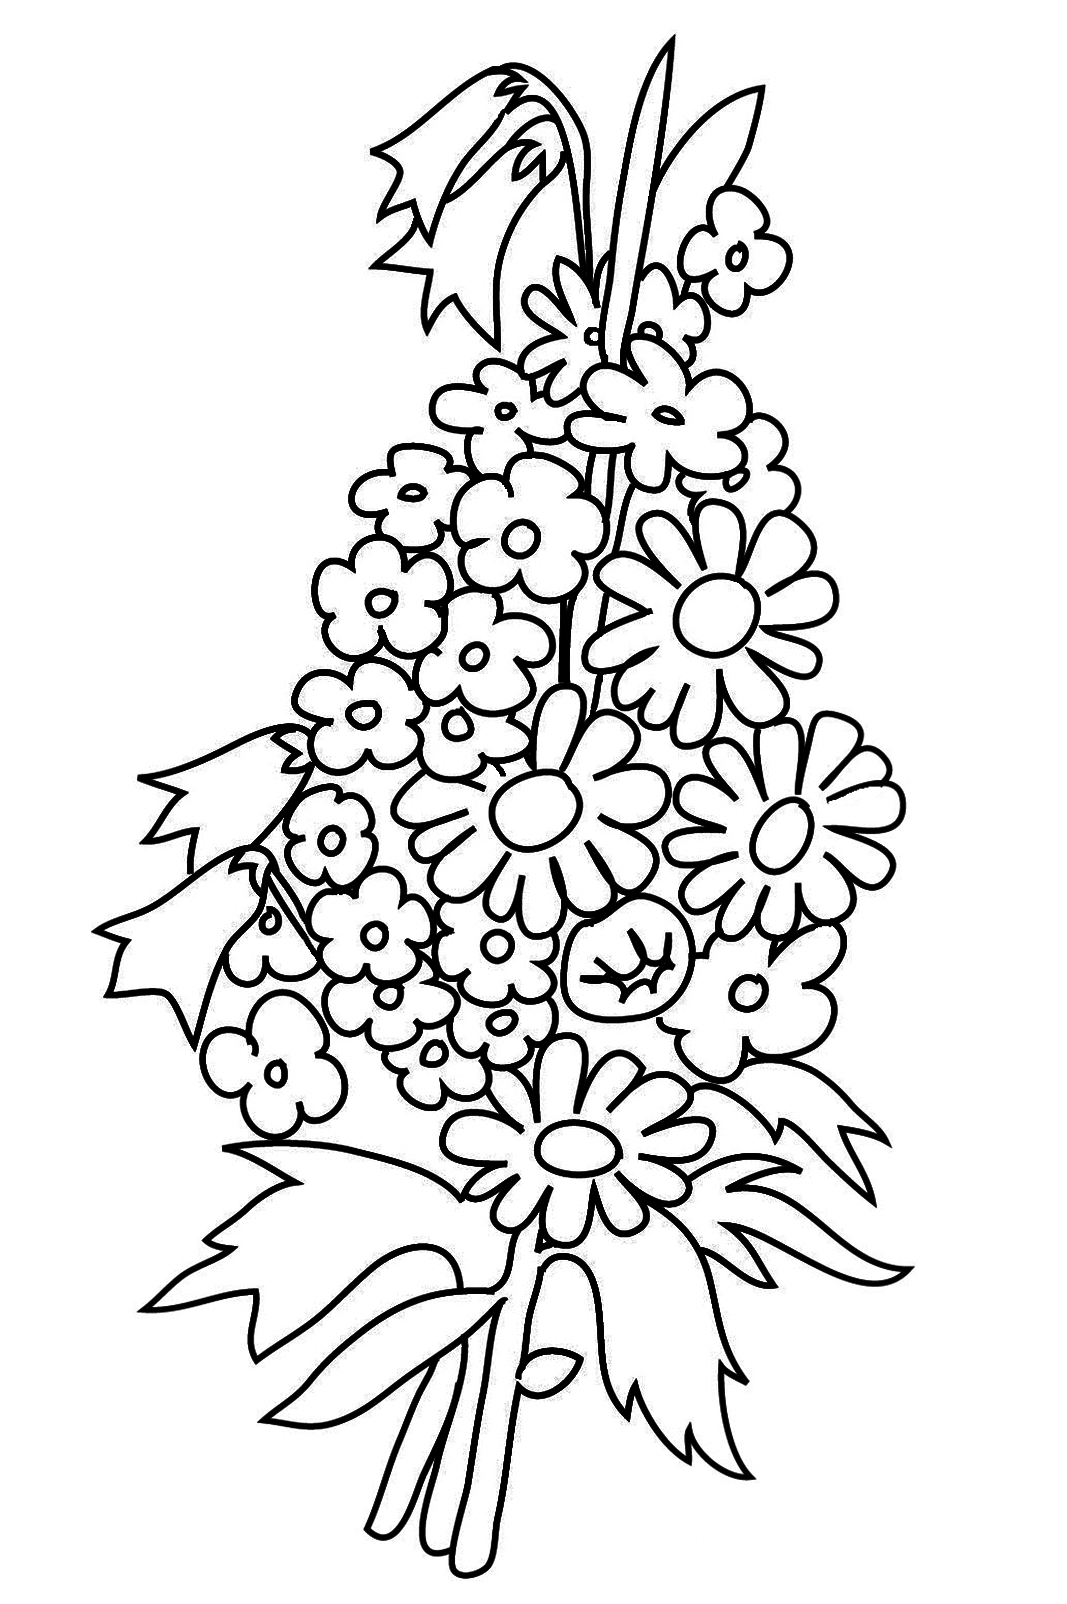 roses coloring printable rose coloring pages for kids coloring roses 1 1